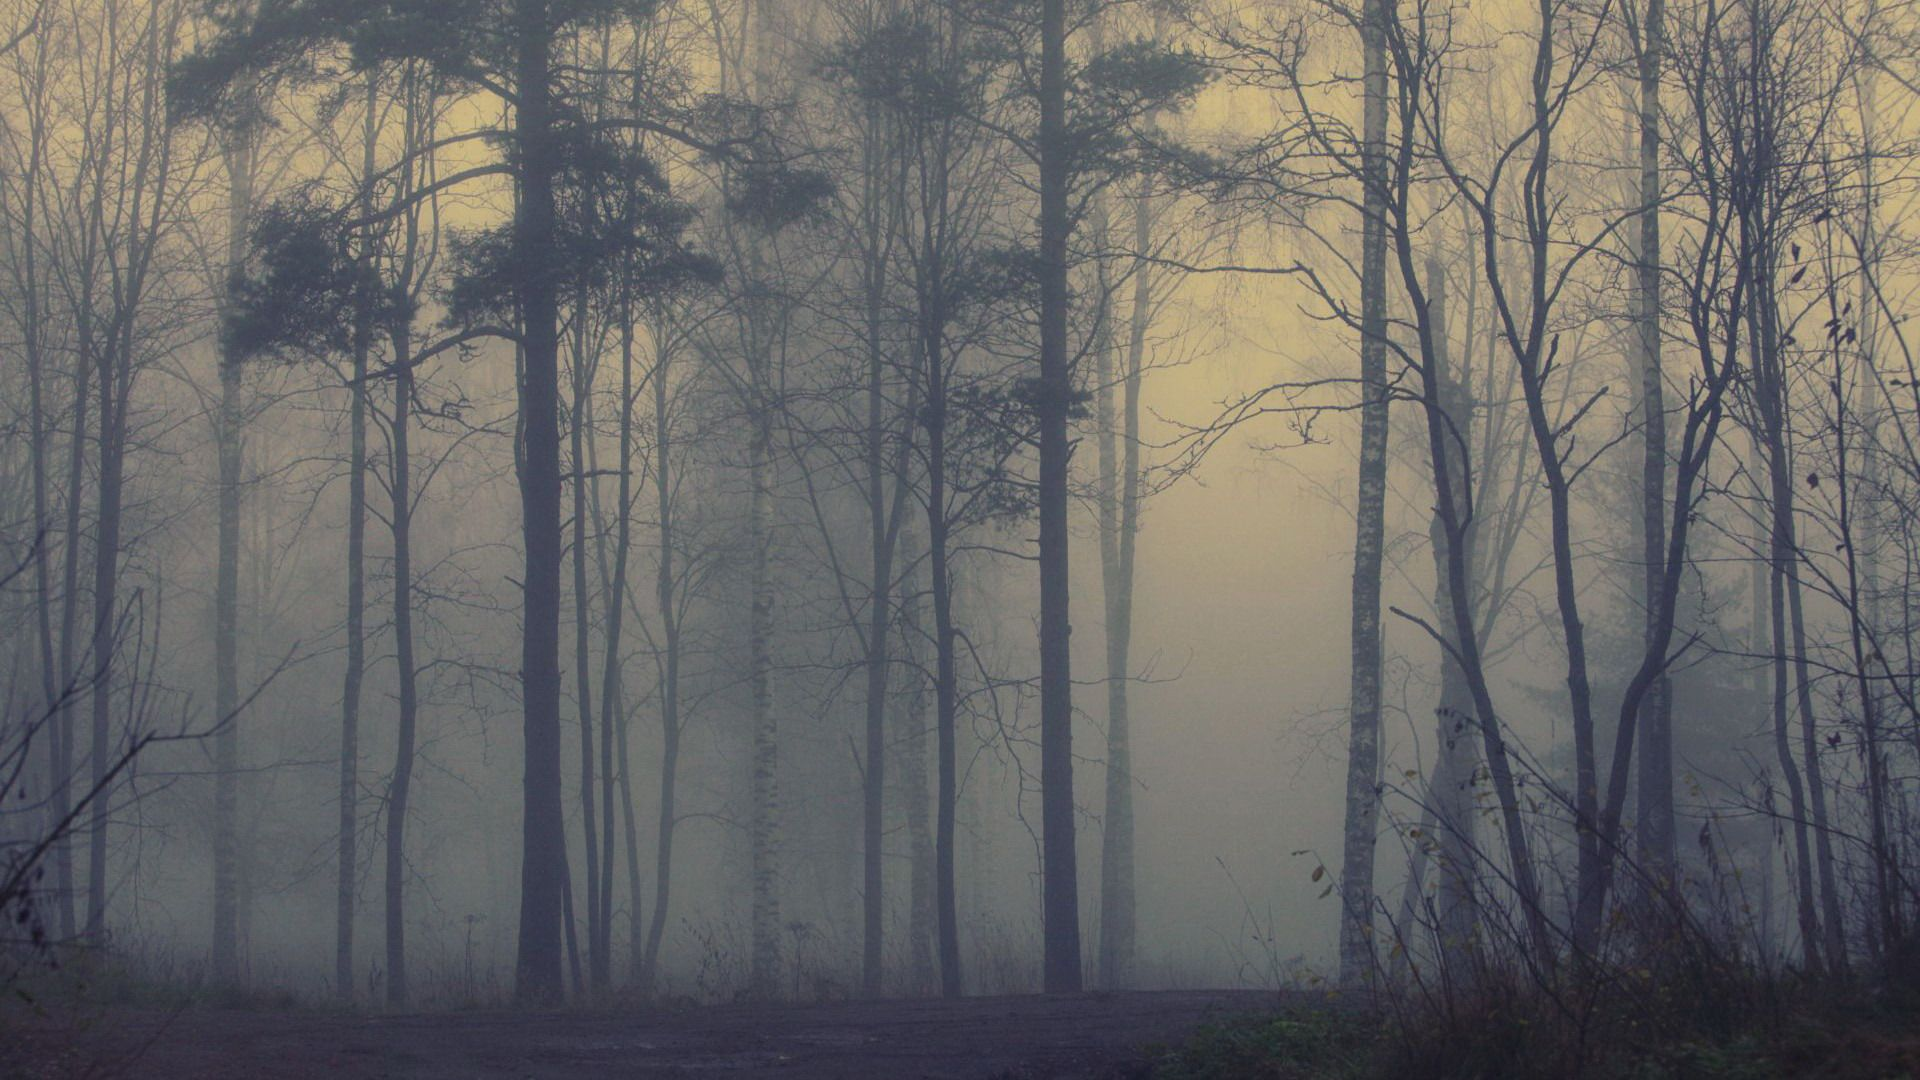 Beautiful-Forest-Foggy-Free-Backgrou-wallpaper-wpc5802653